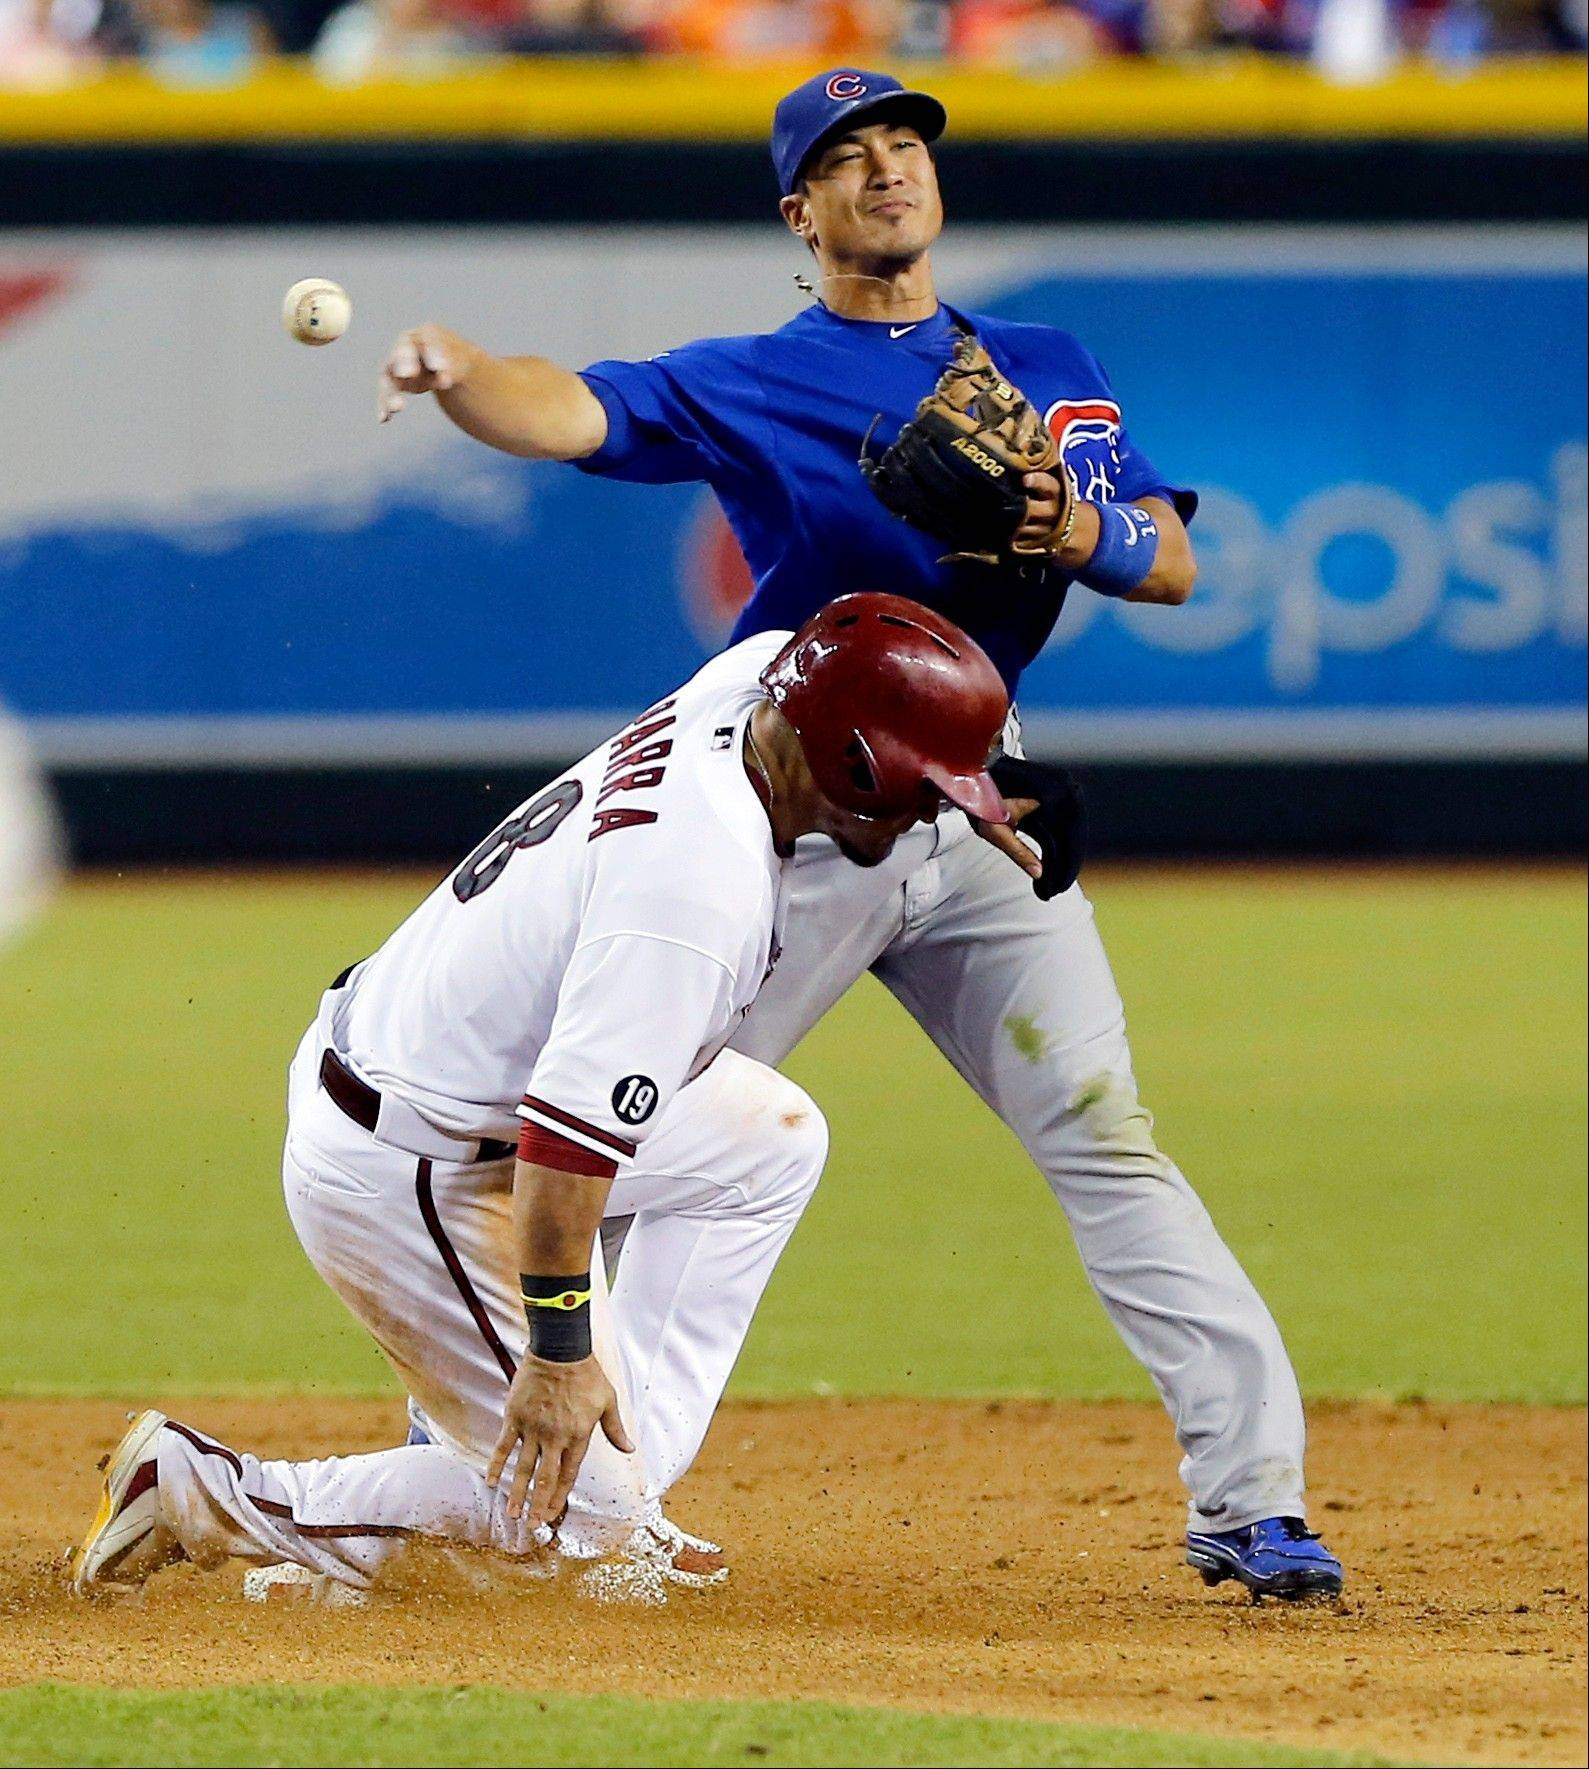 Arizona Diamondbacks' Gerardo Parra is forced out by Chicago Cubs' Darwin Barney as he throws out Wil Neives Thursday night in Phoenix. The Cubs lost 3-1.